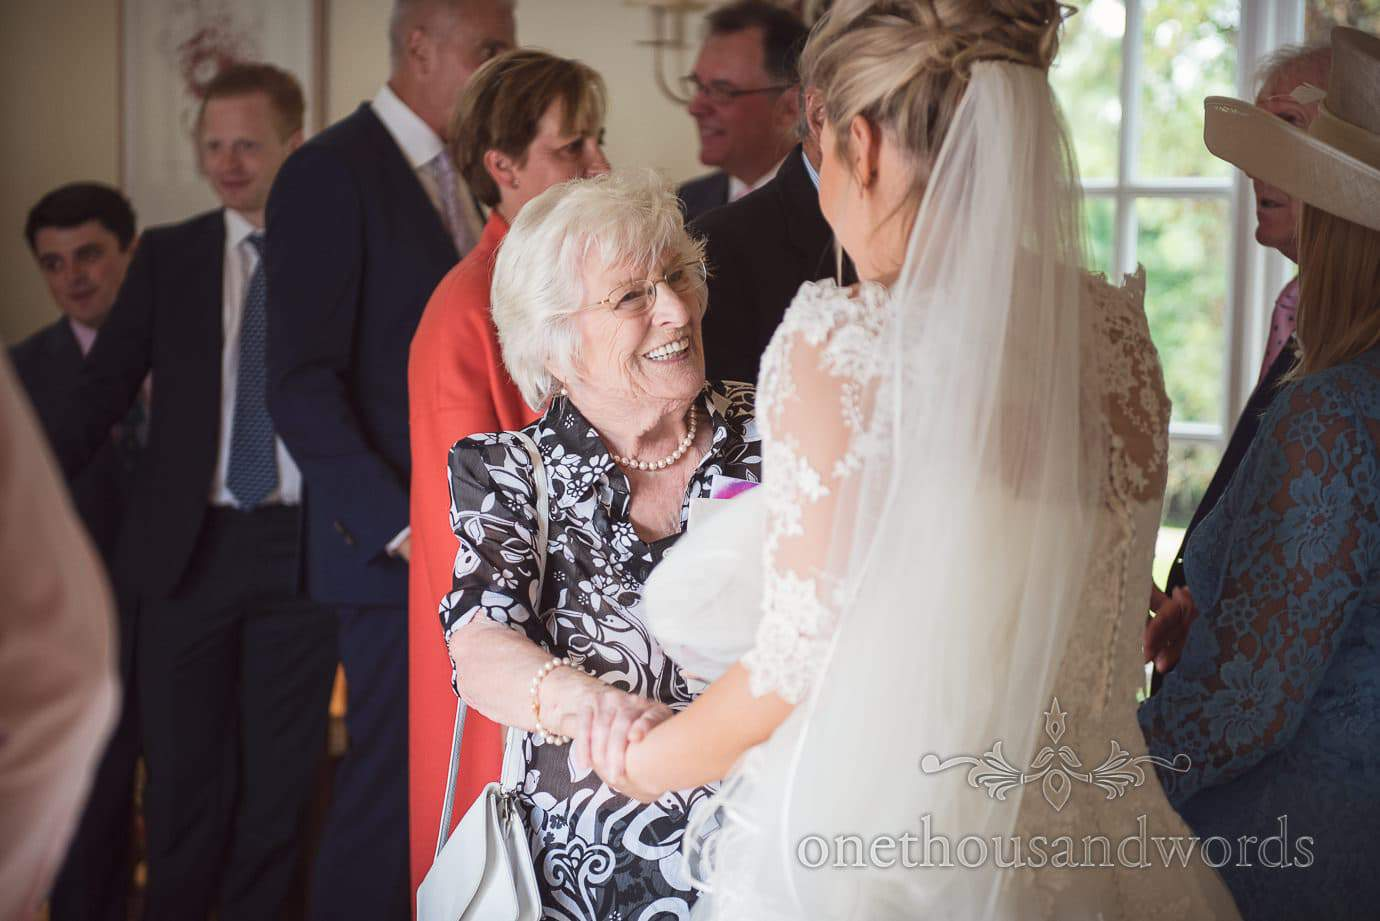 Elderly wedding guest in black and white floral dress with pearls greets bride